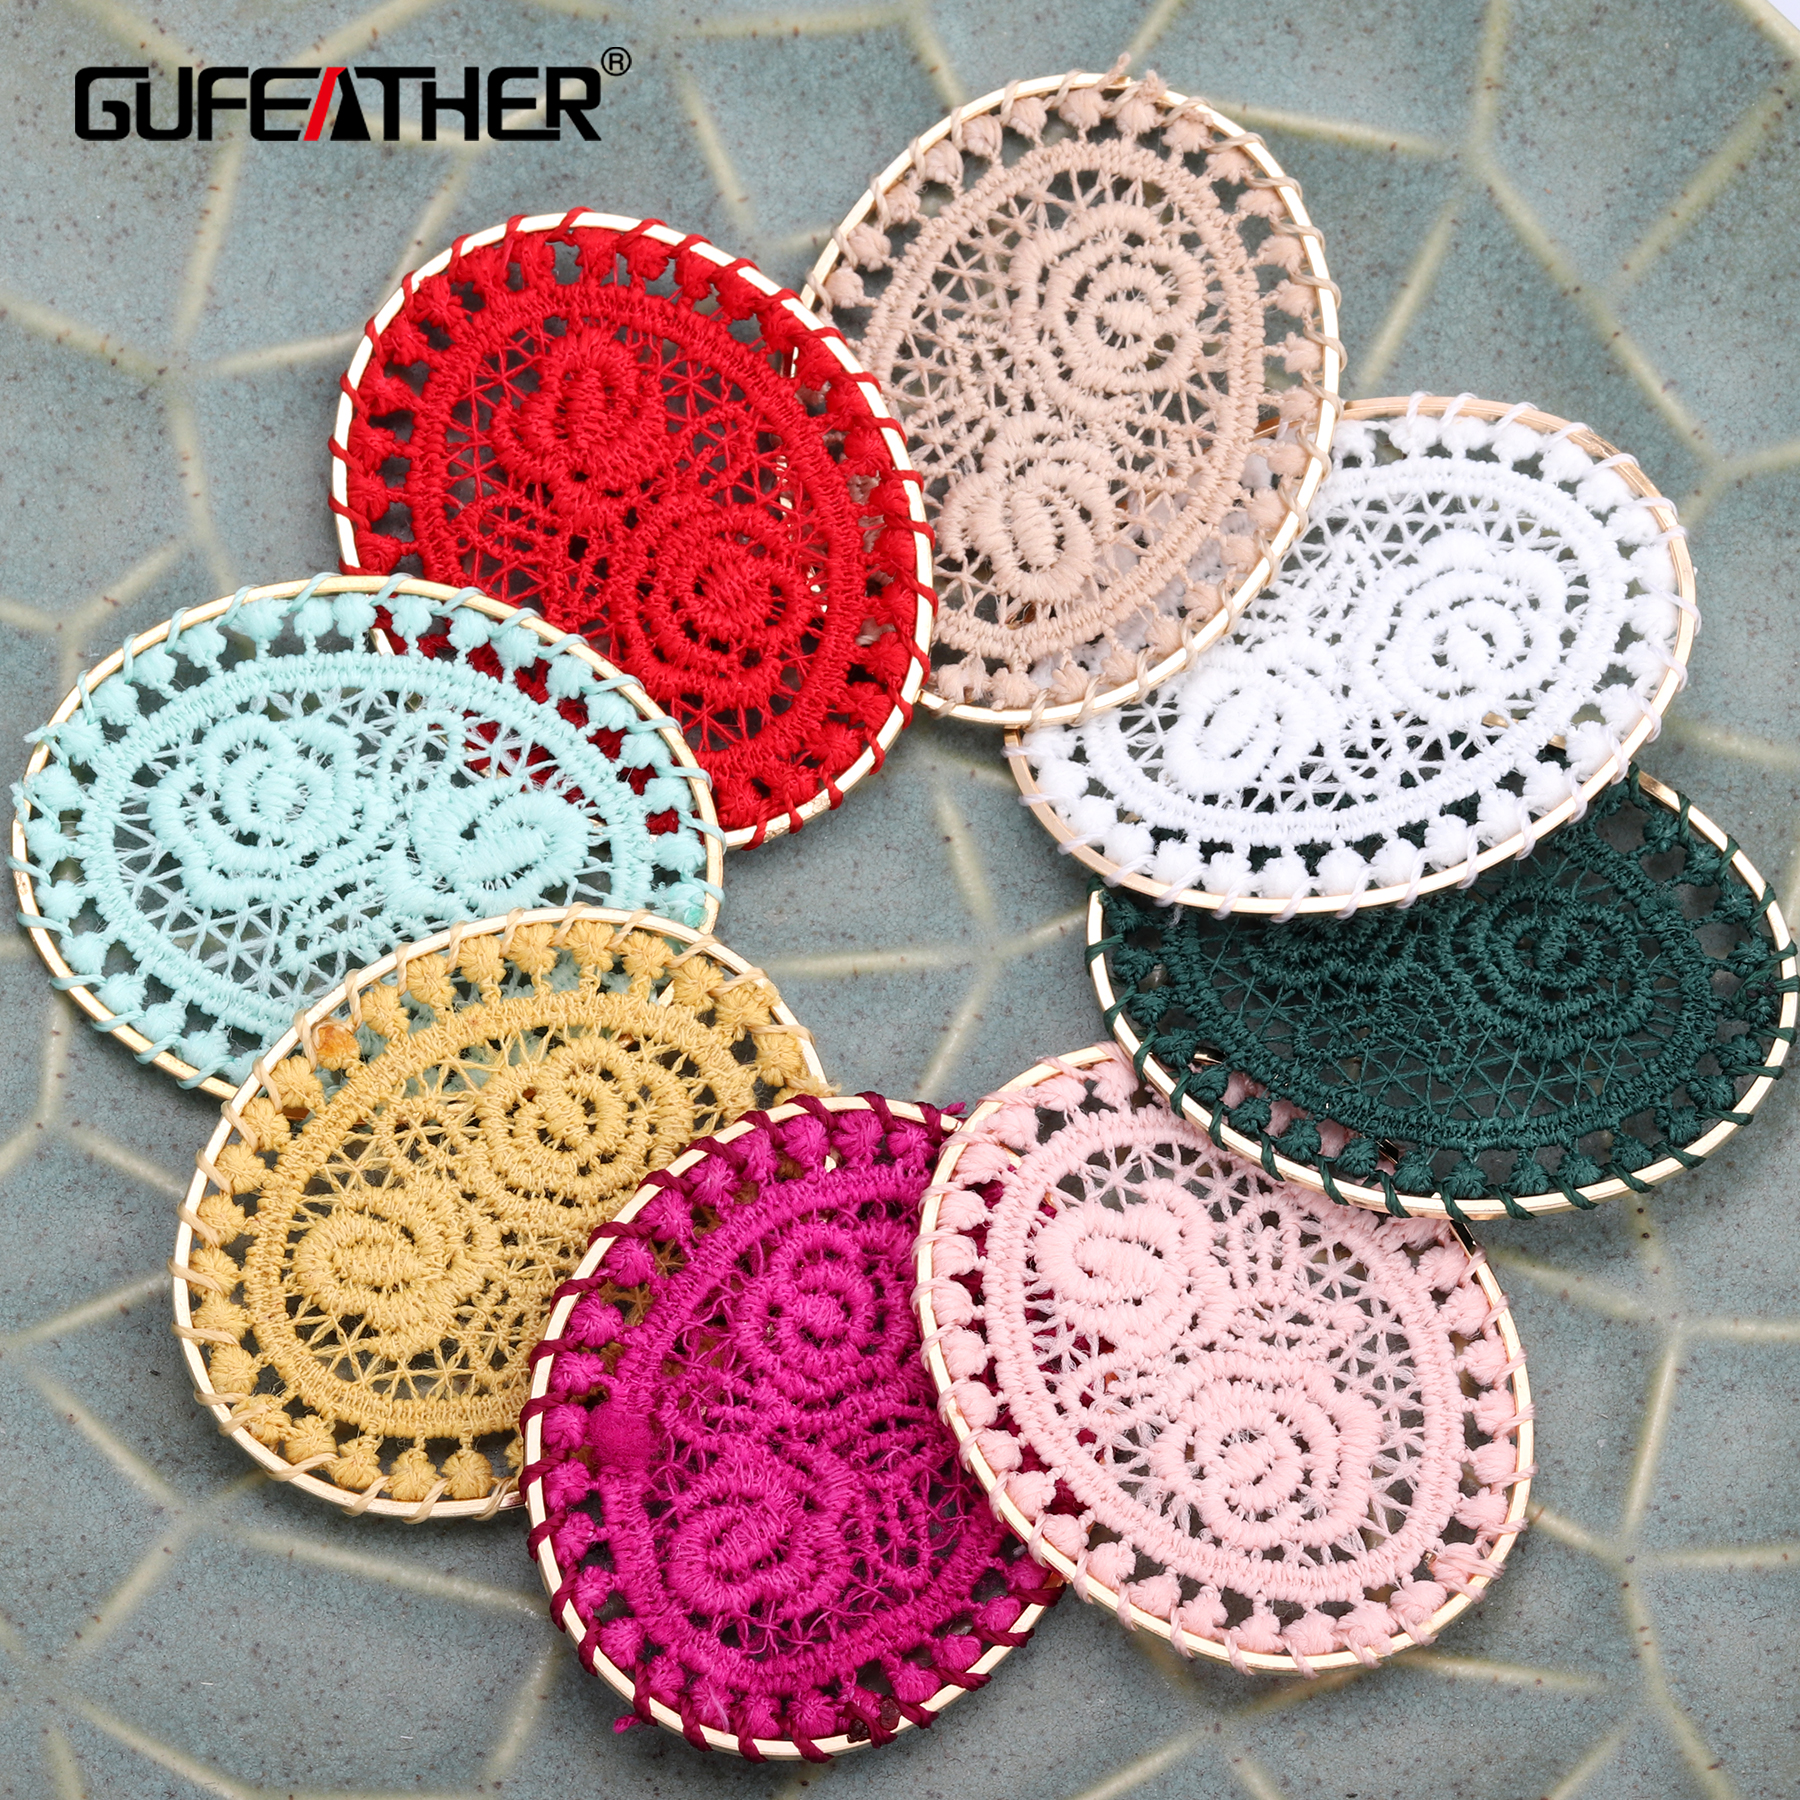 GUFEATHER M367,Hand Knitting,oval Shape,hand Made,jewelry Findings,jewelry Making,diy Jewelry,home Decorative,10pcs/pack